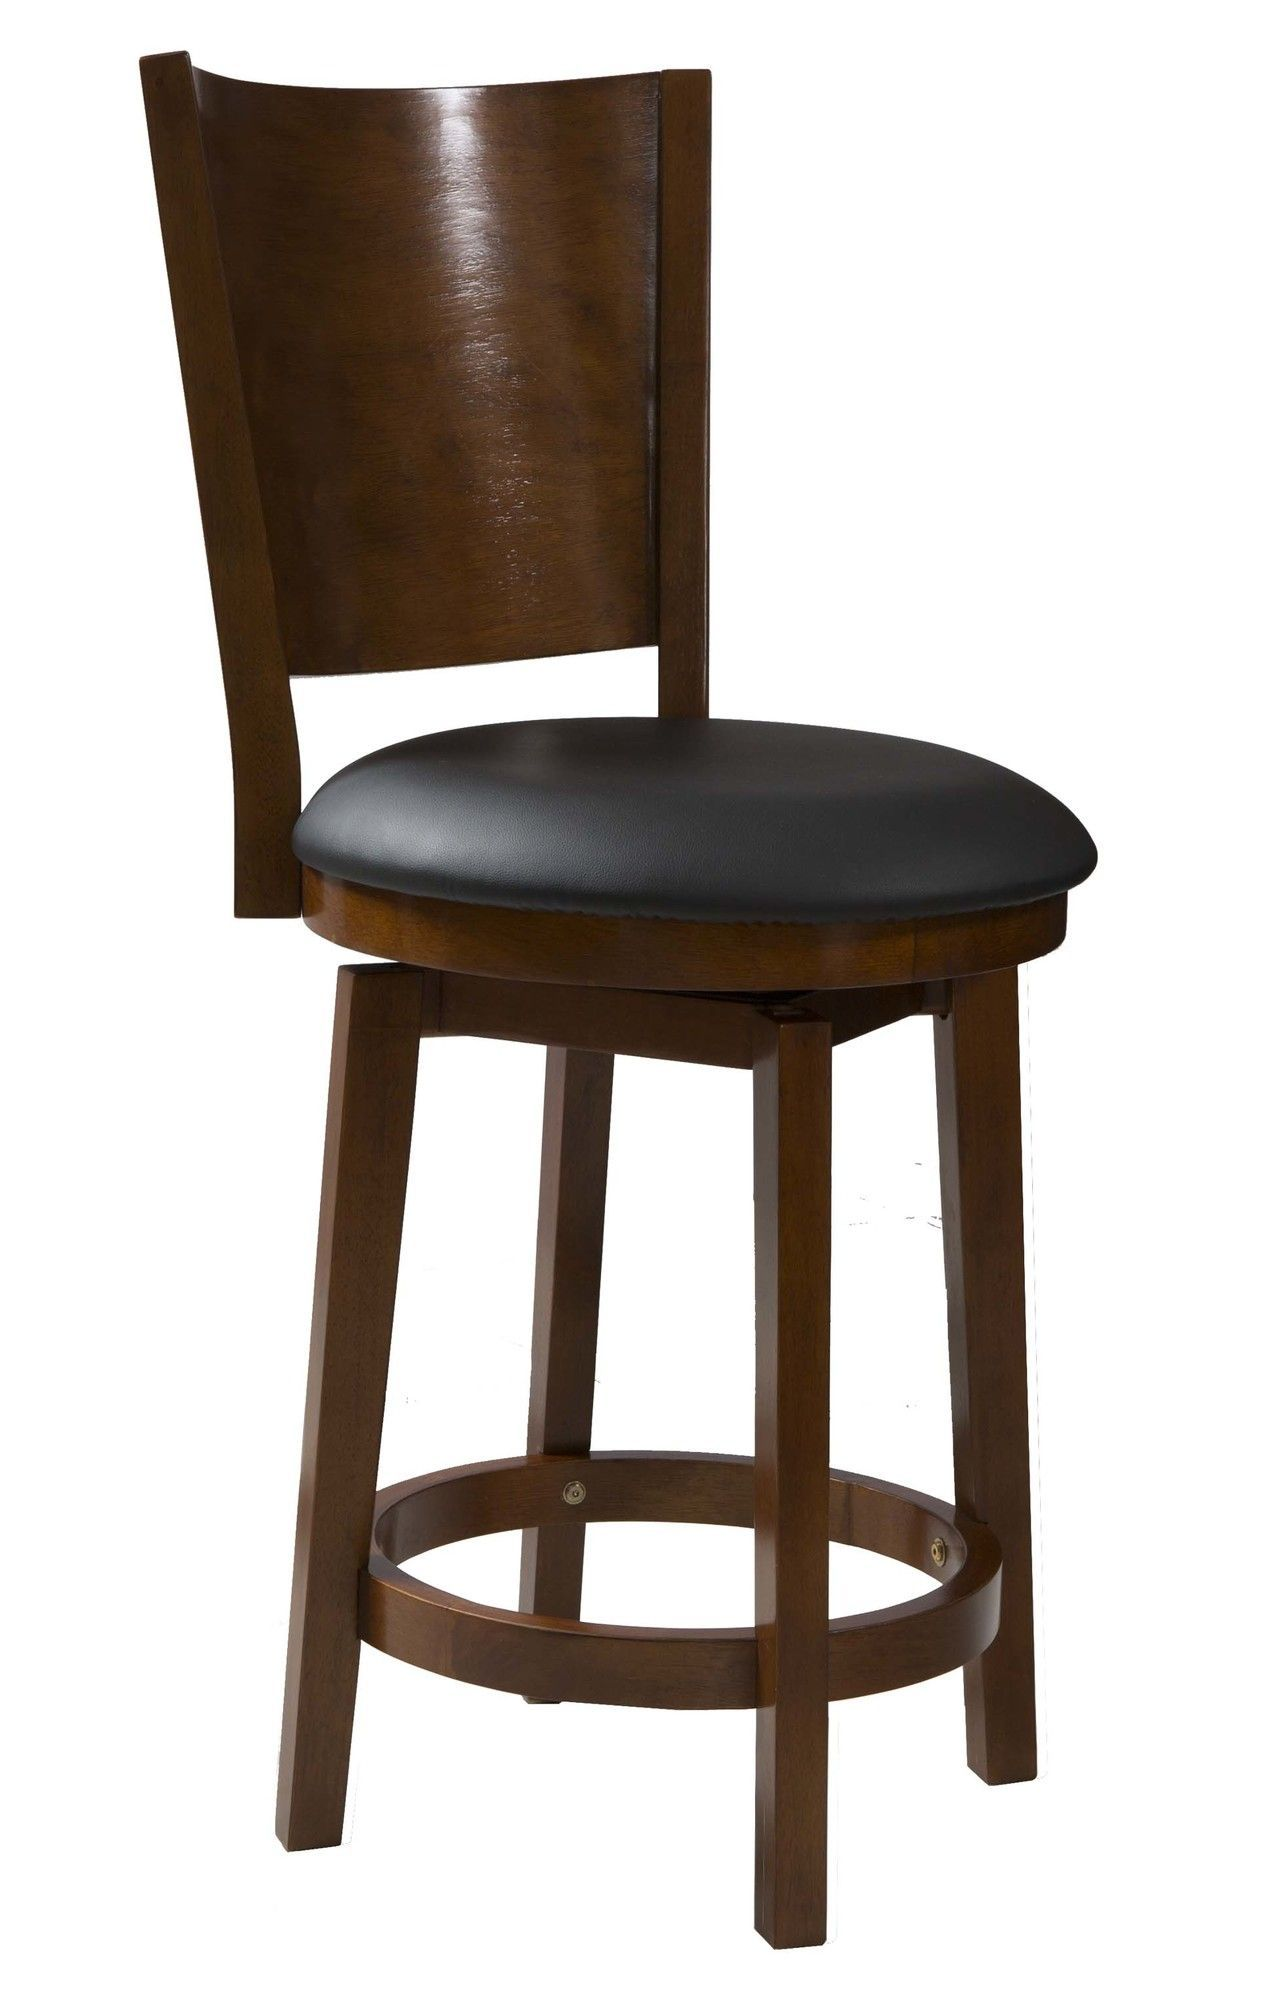 Big And Tall Bar Stool With Cushion Products Pinterest Stool